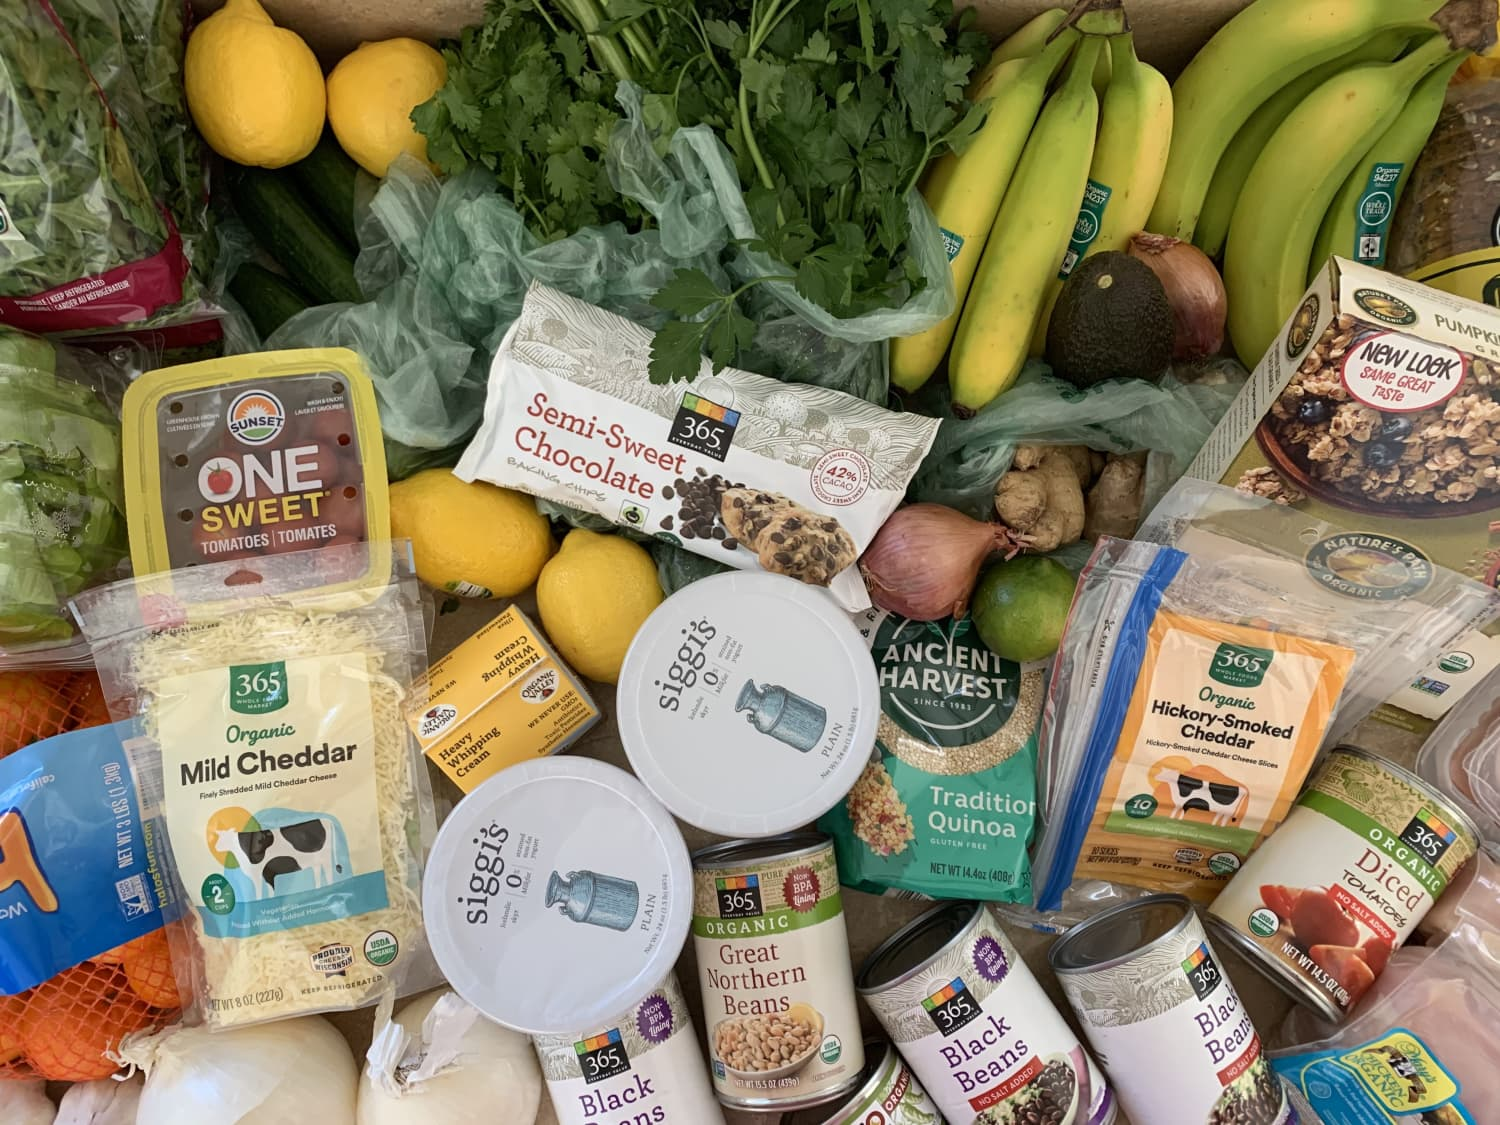 How I Shop and Meal Plan for 2 Weeks' Worth of Groceries